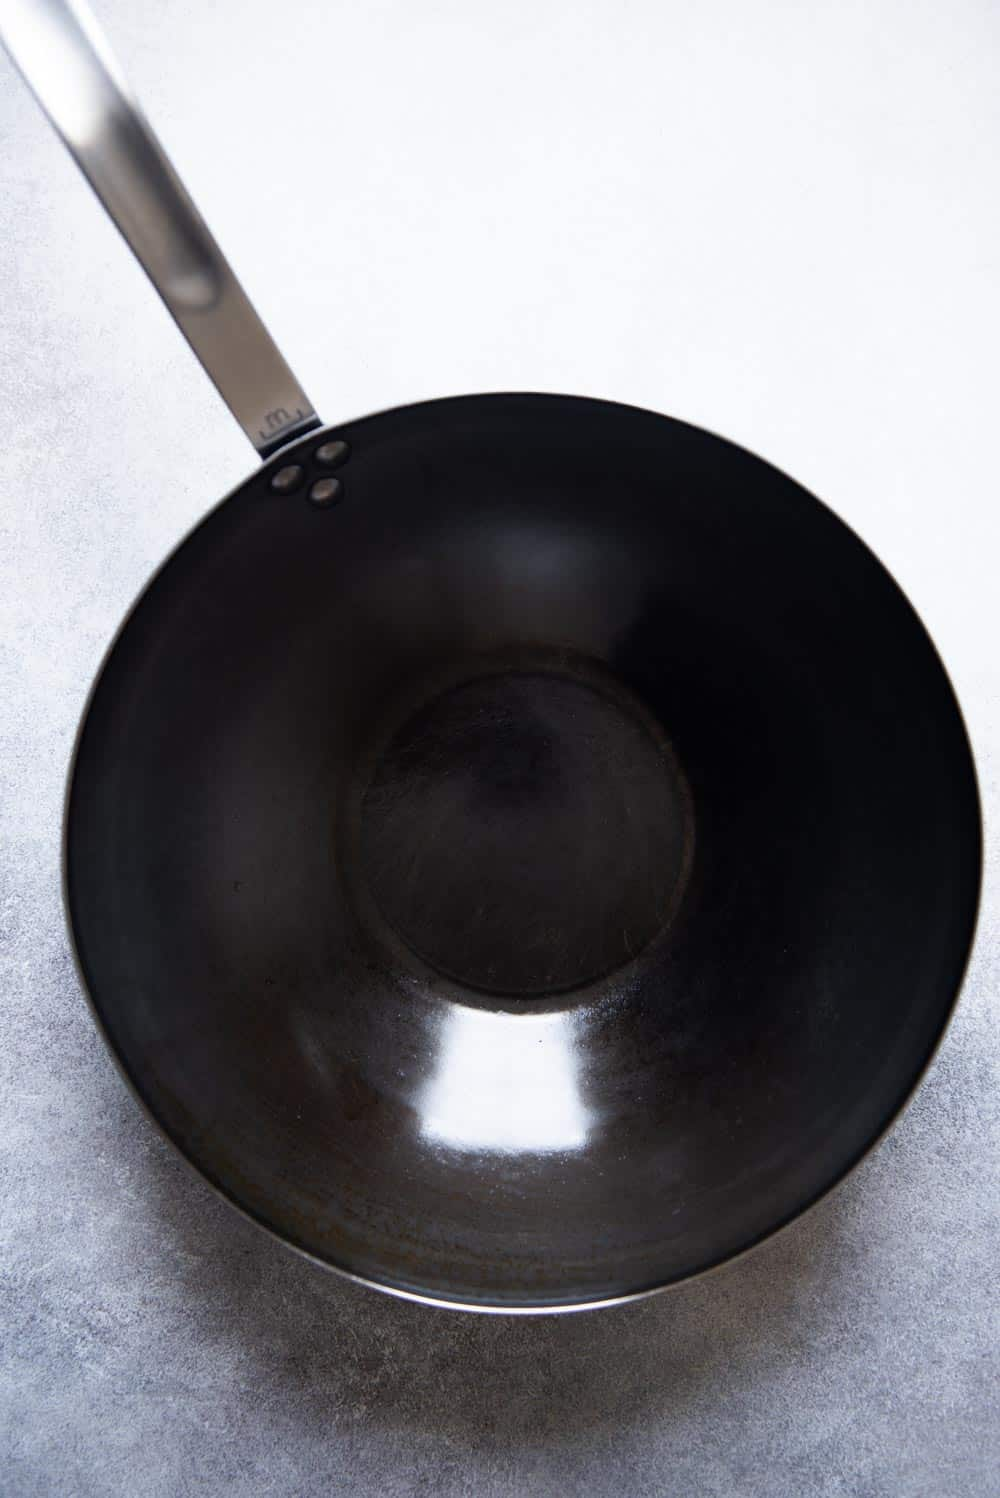 How to Season a Wok - step by step guide